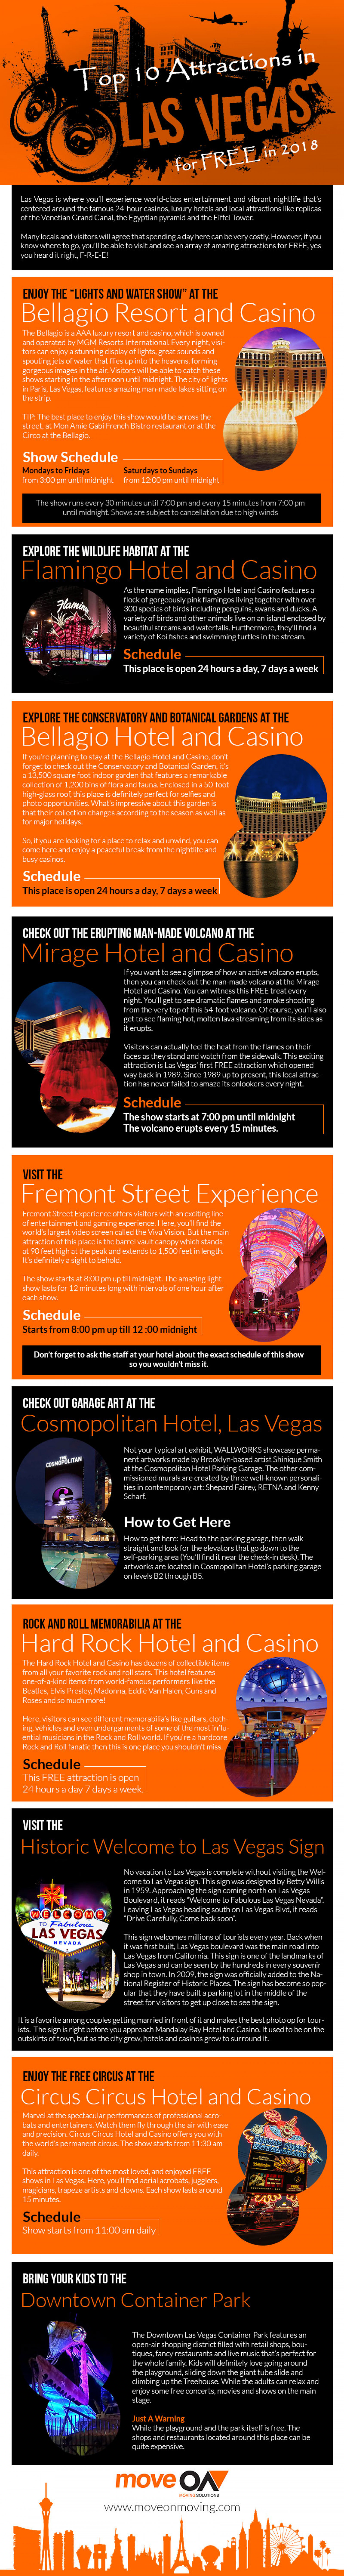 Top 10 Attractions to do in Las Vegas for Free! Infographic